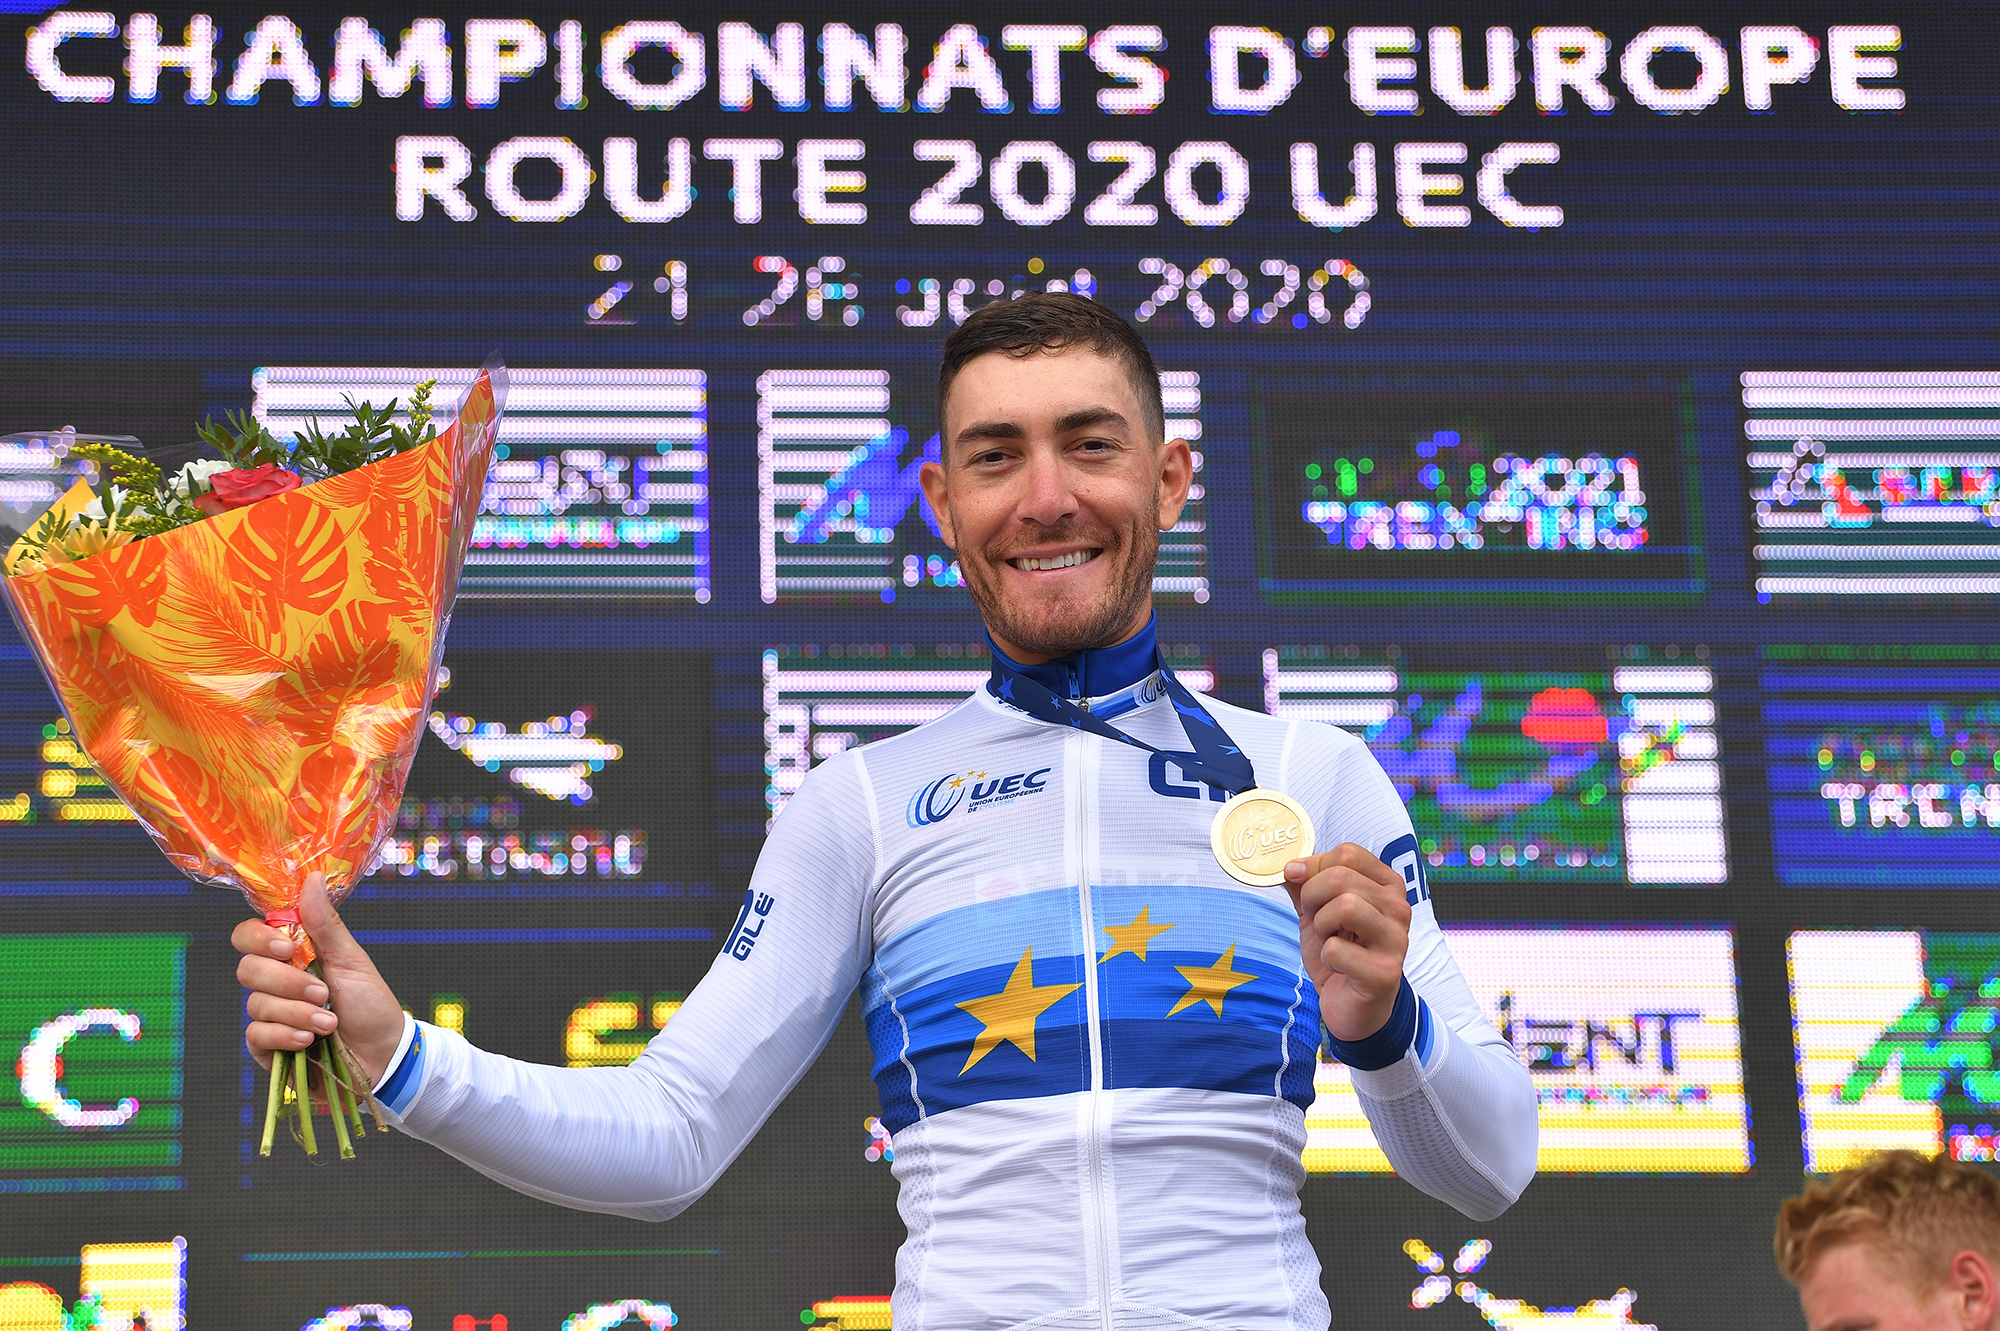 PLOUAY, FRANCE - AUGUST 26: Podium / Giacomo Nizzolo of Italy Gold Medal European Champion Jersey / Celebration / during the 26th UEC Road European Championships 2020, Men's Elite a 177,45km race from Plouay to Plouay / @UEC_cycling / #EuroRoad20 / on August 26, 2020 in Plouay, France. (Photo by Luc Claessen/Getty Images)